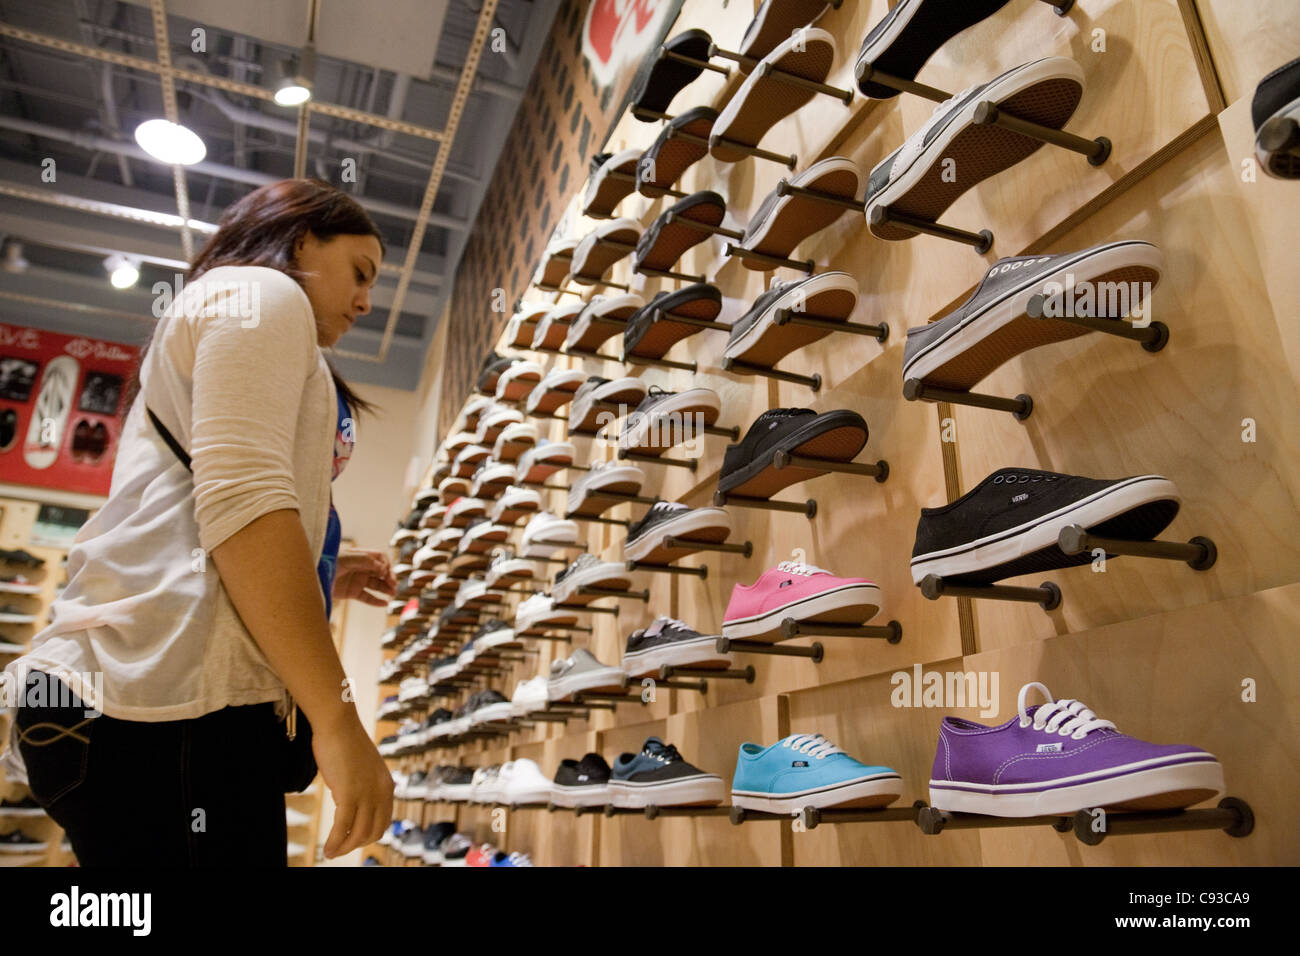 9273fd43f92647 Woman Buying Vans Shoes In Stock Photos   Woman Buying Vans Shoes In ...